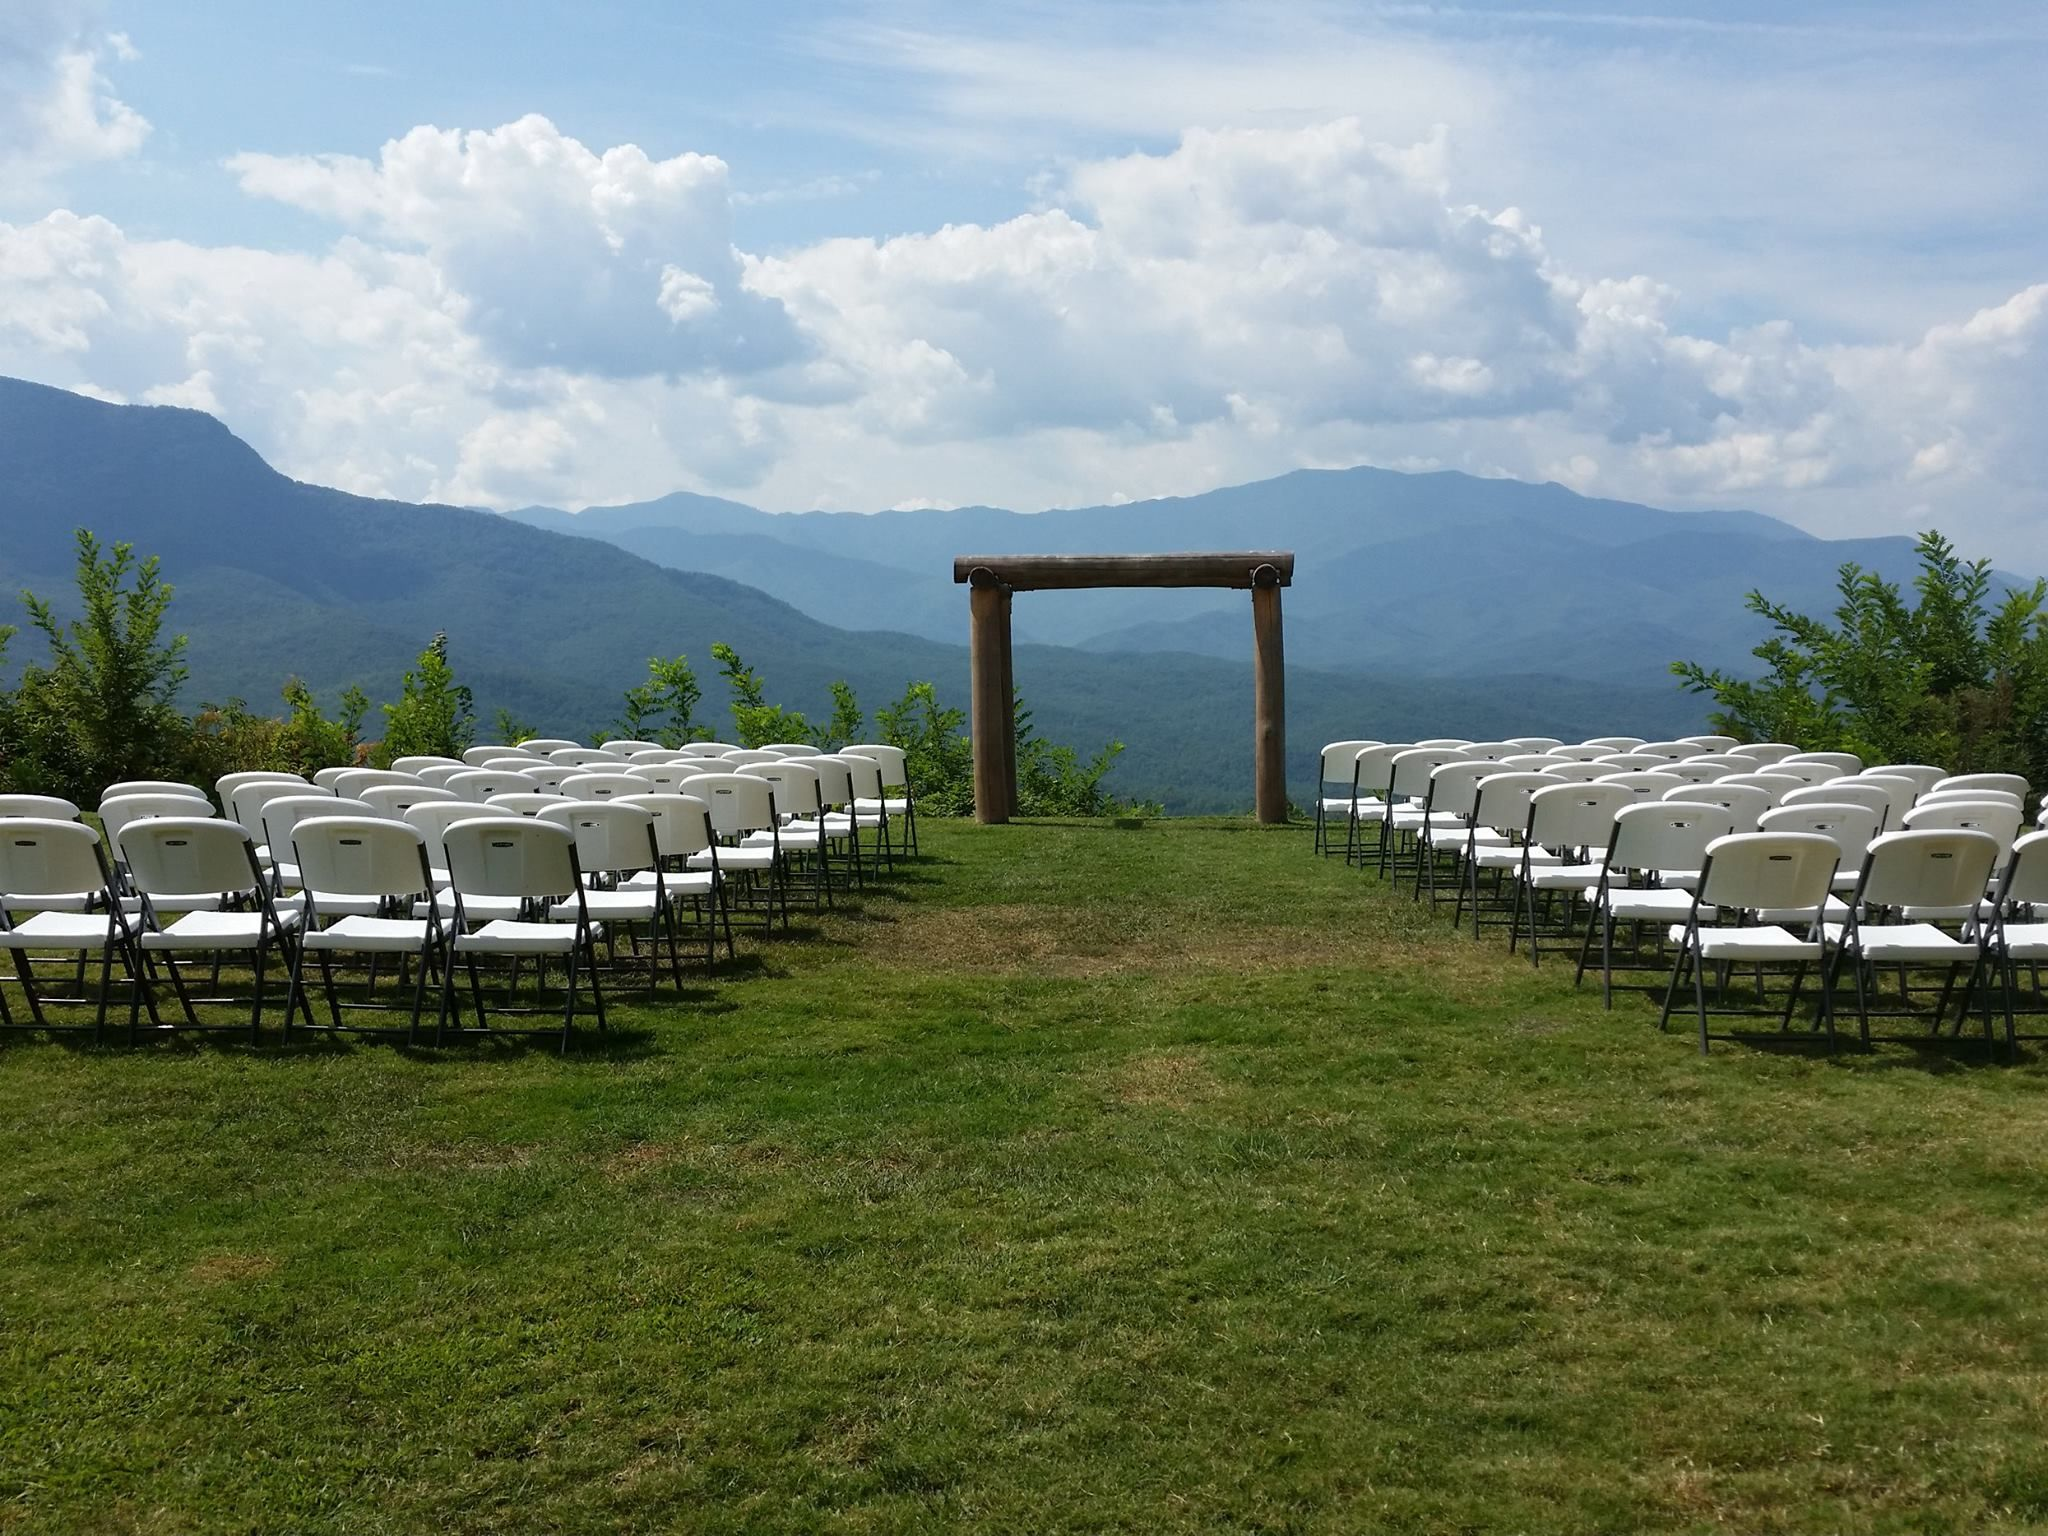 Smoky Mountain Weddings Sevierville Pigeon Forge And Gatlinburg Weddings Gatlinburg Weddings Tennessee Wedding Venues Smoky Mountain Wedding